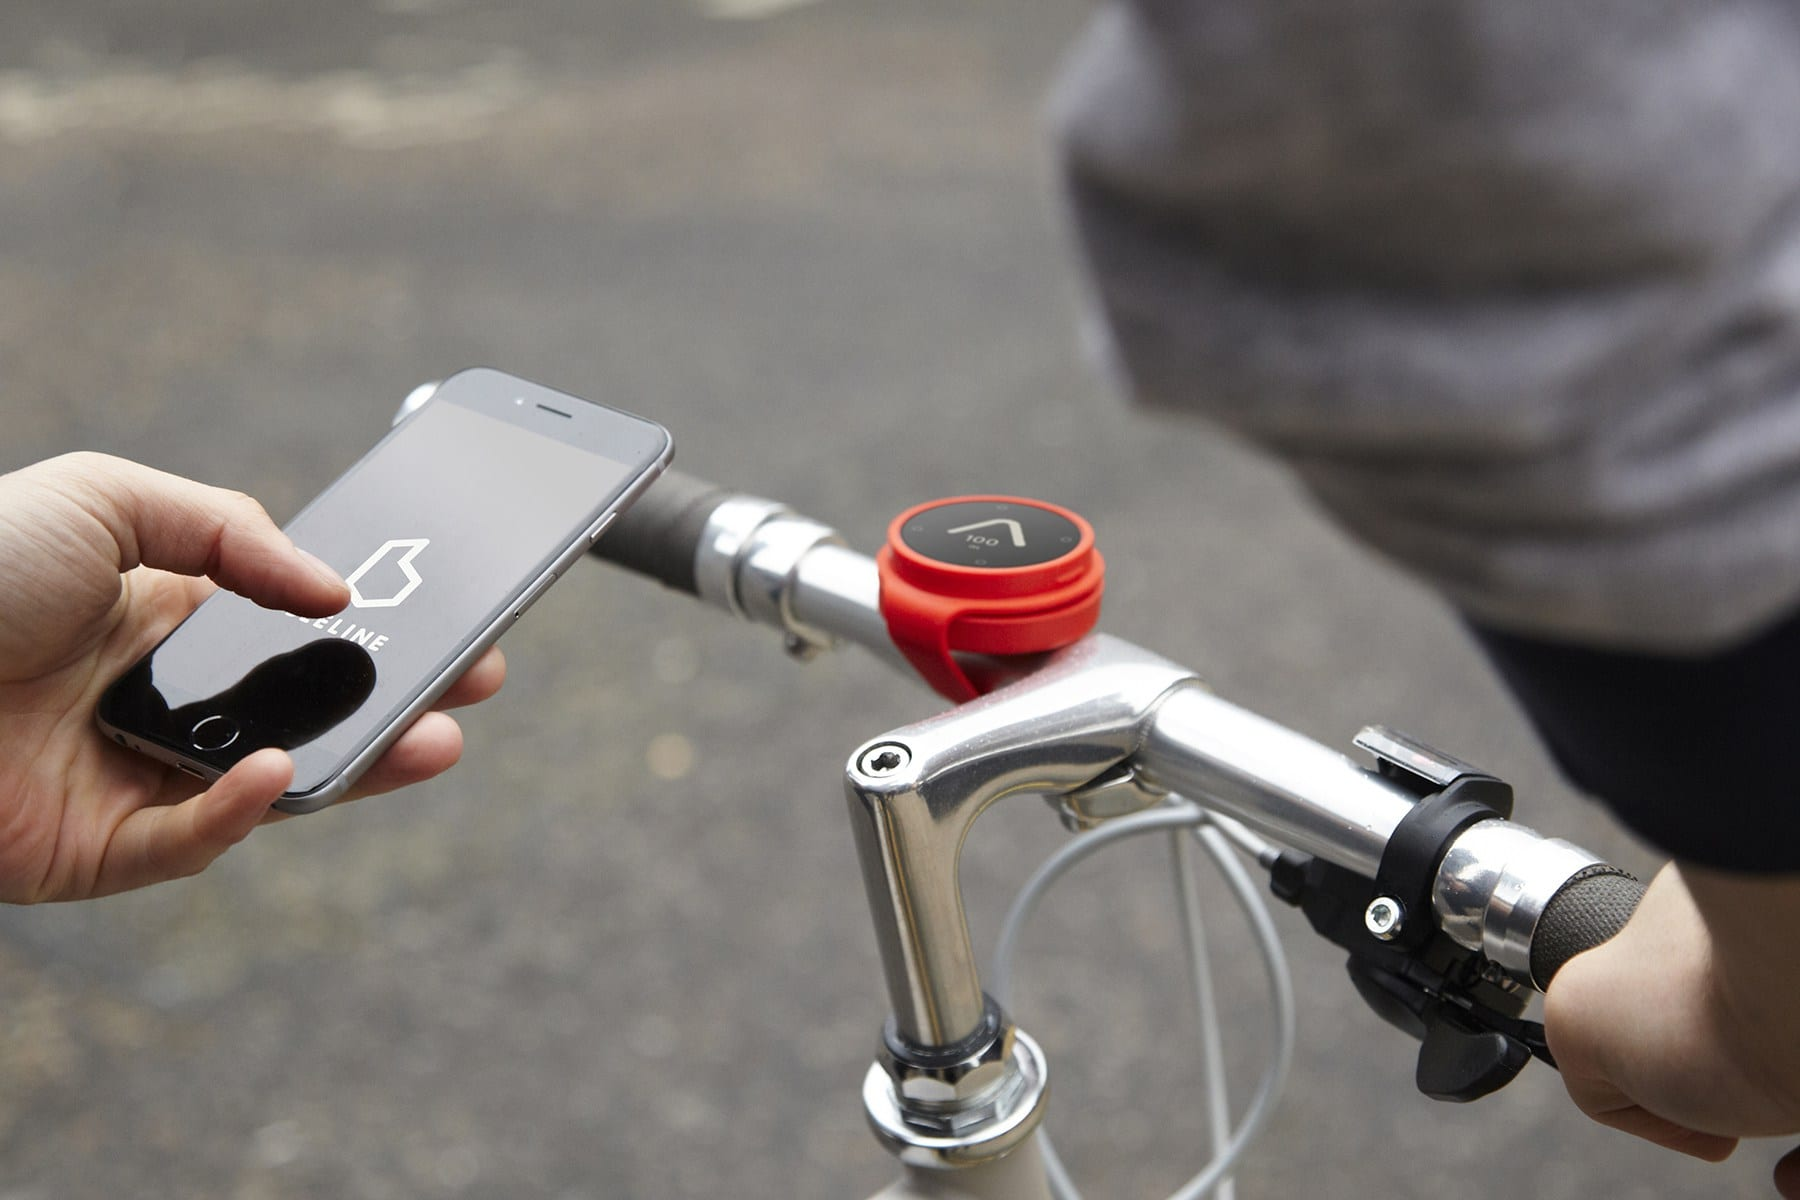 Beeline Smart Compass points the way for city cycling